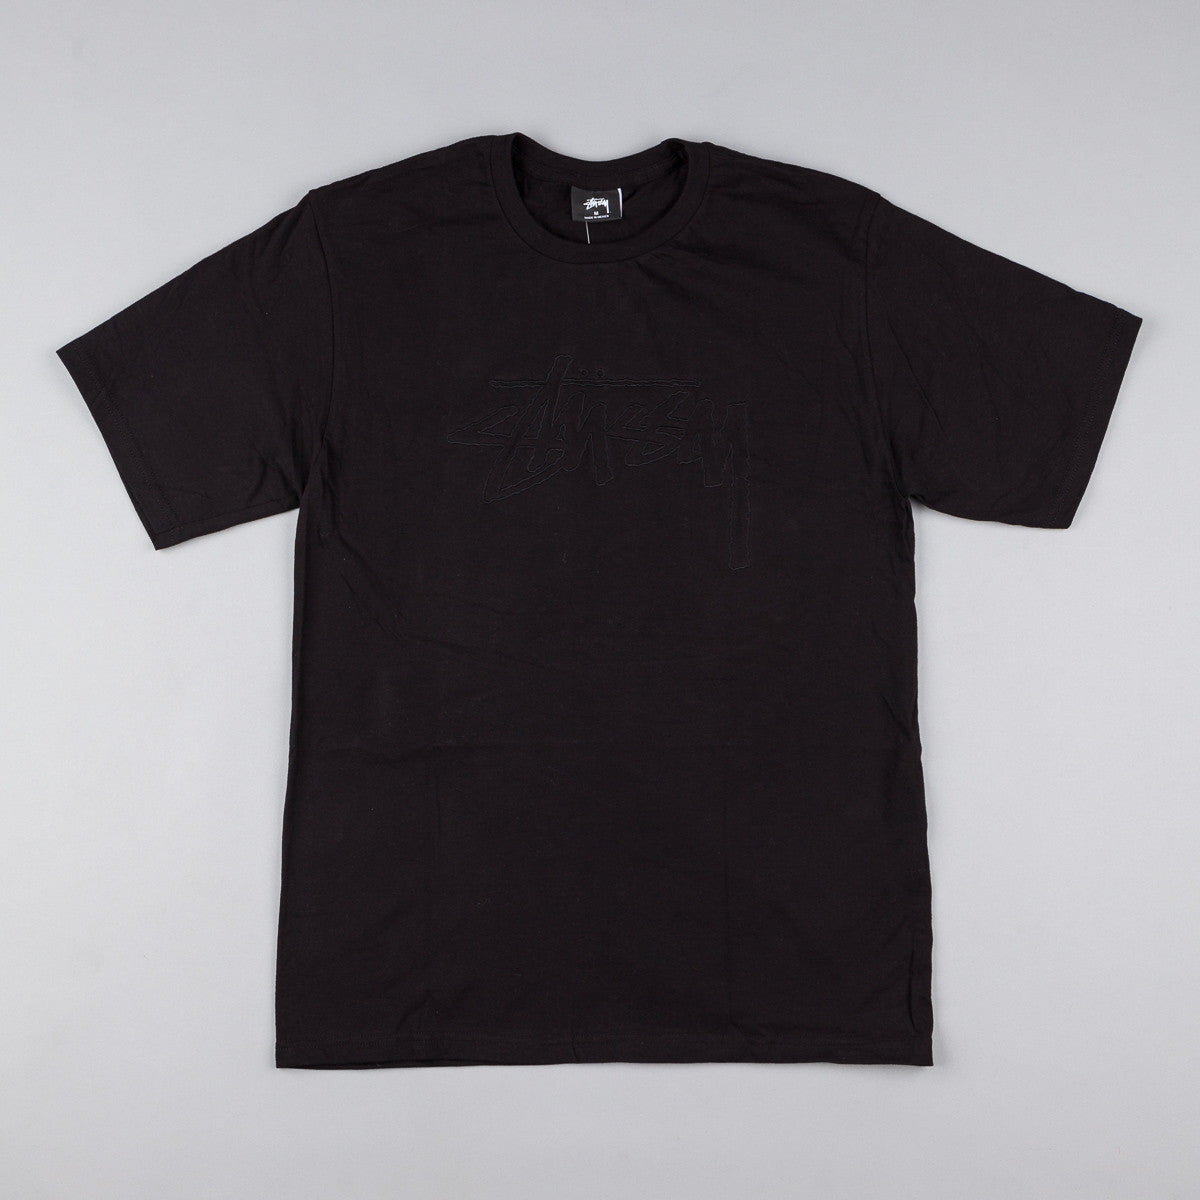 Stussy Stock Embroidered T-Shirt - Black